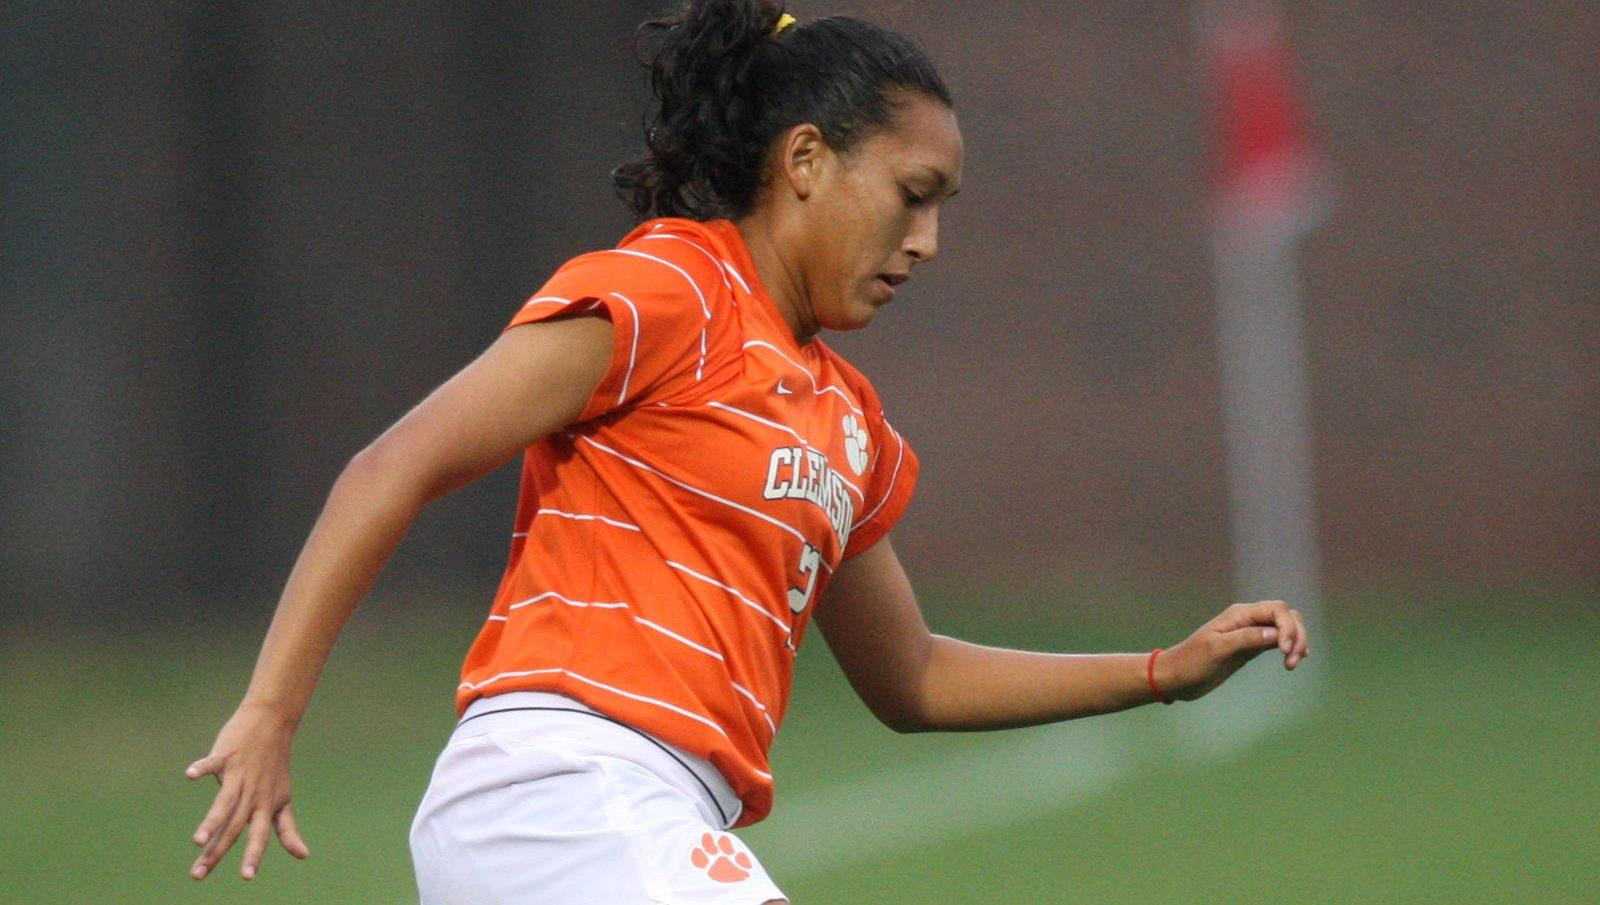 Clemson Women's Soccer Team Falls to #1 Florida State in Tallahassee Thursday Night